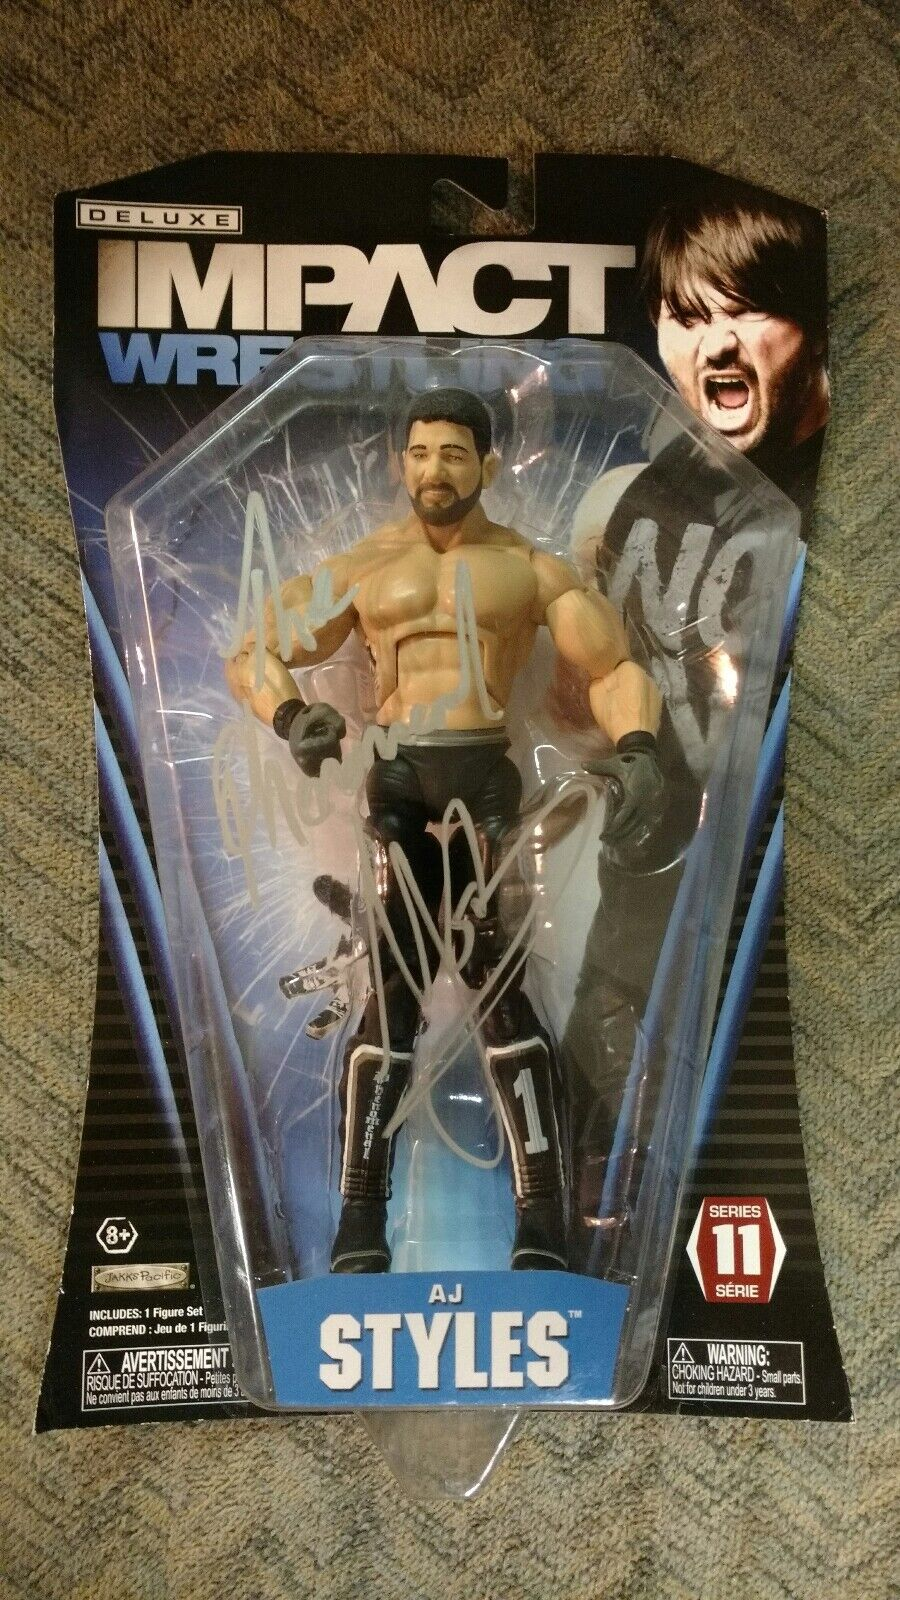 TNA IMPACT WRESTLING AJ STYLES AUTOGRAPHED SIGNED FIGURE WWE WWF ROH NJPW RARE